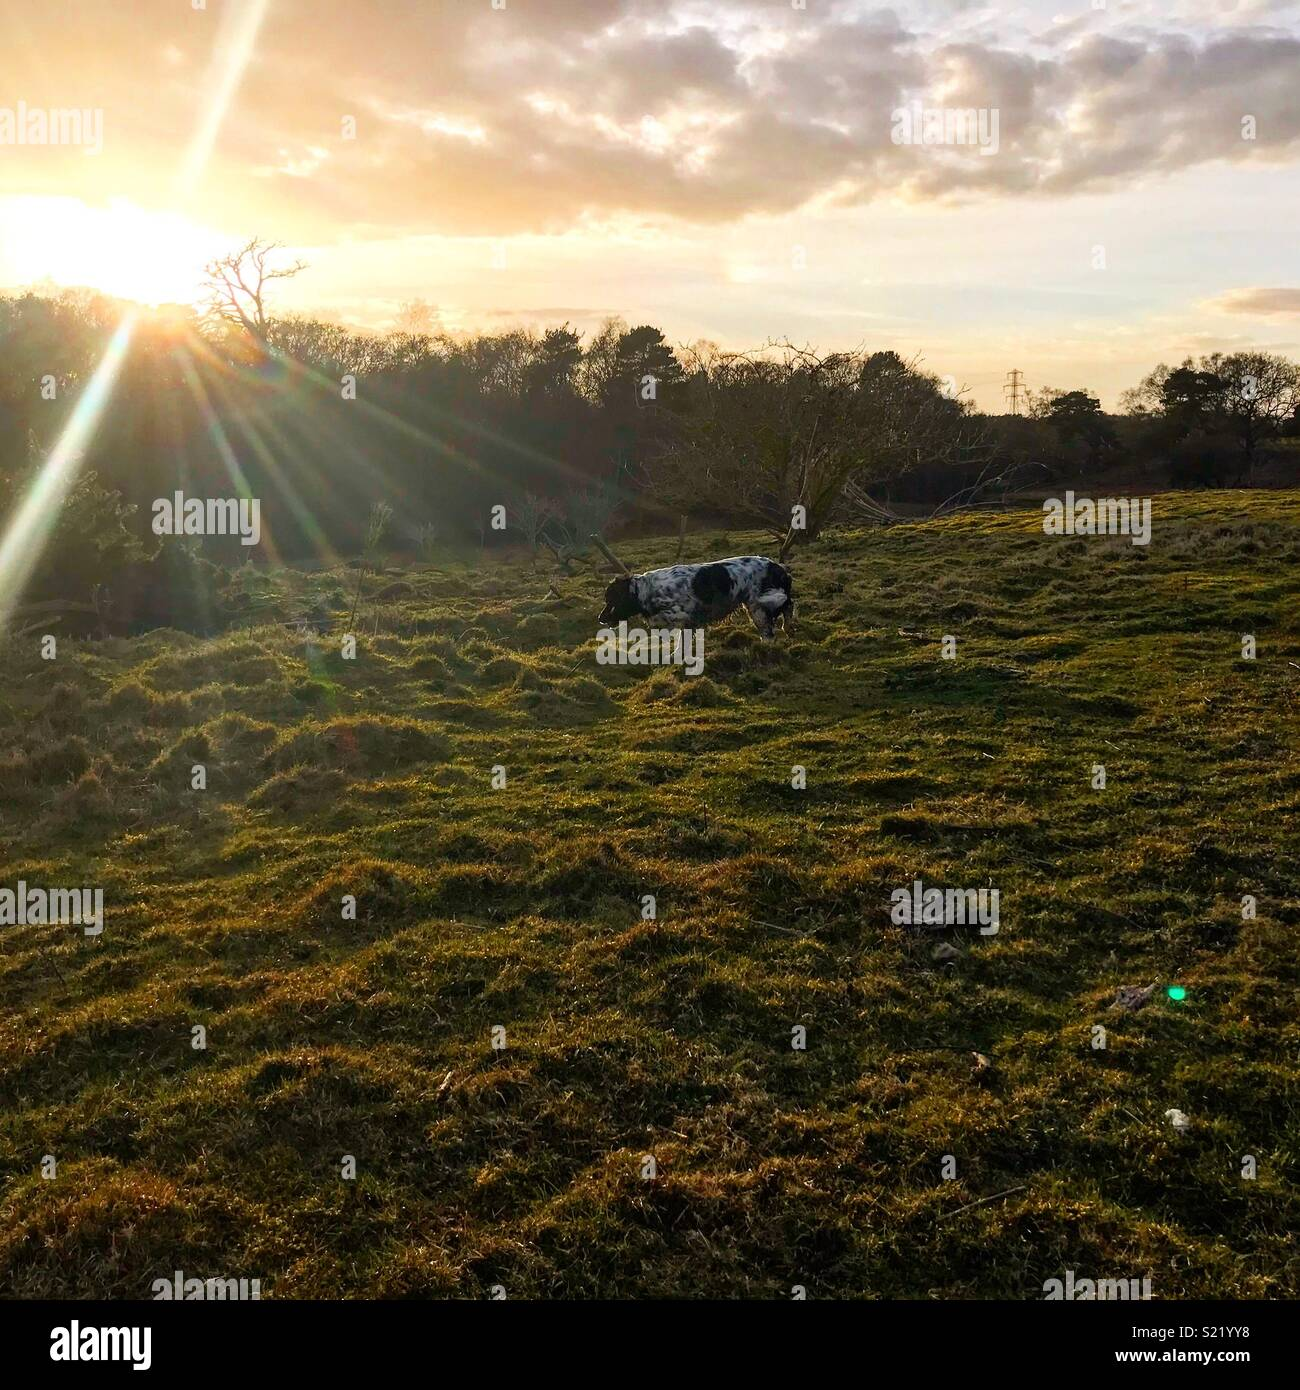 Sunset over fields dog walking - Stock Image